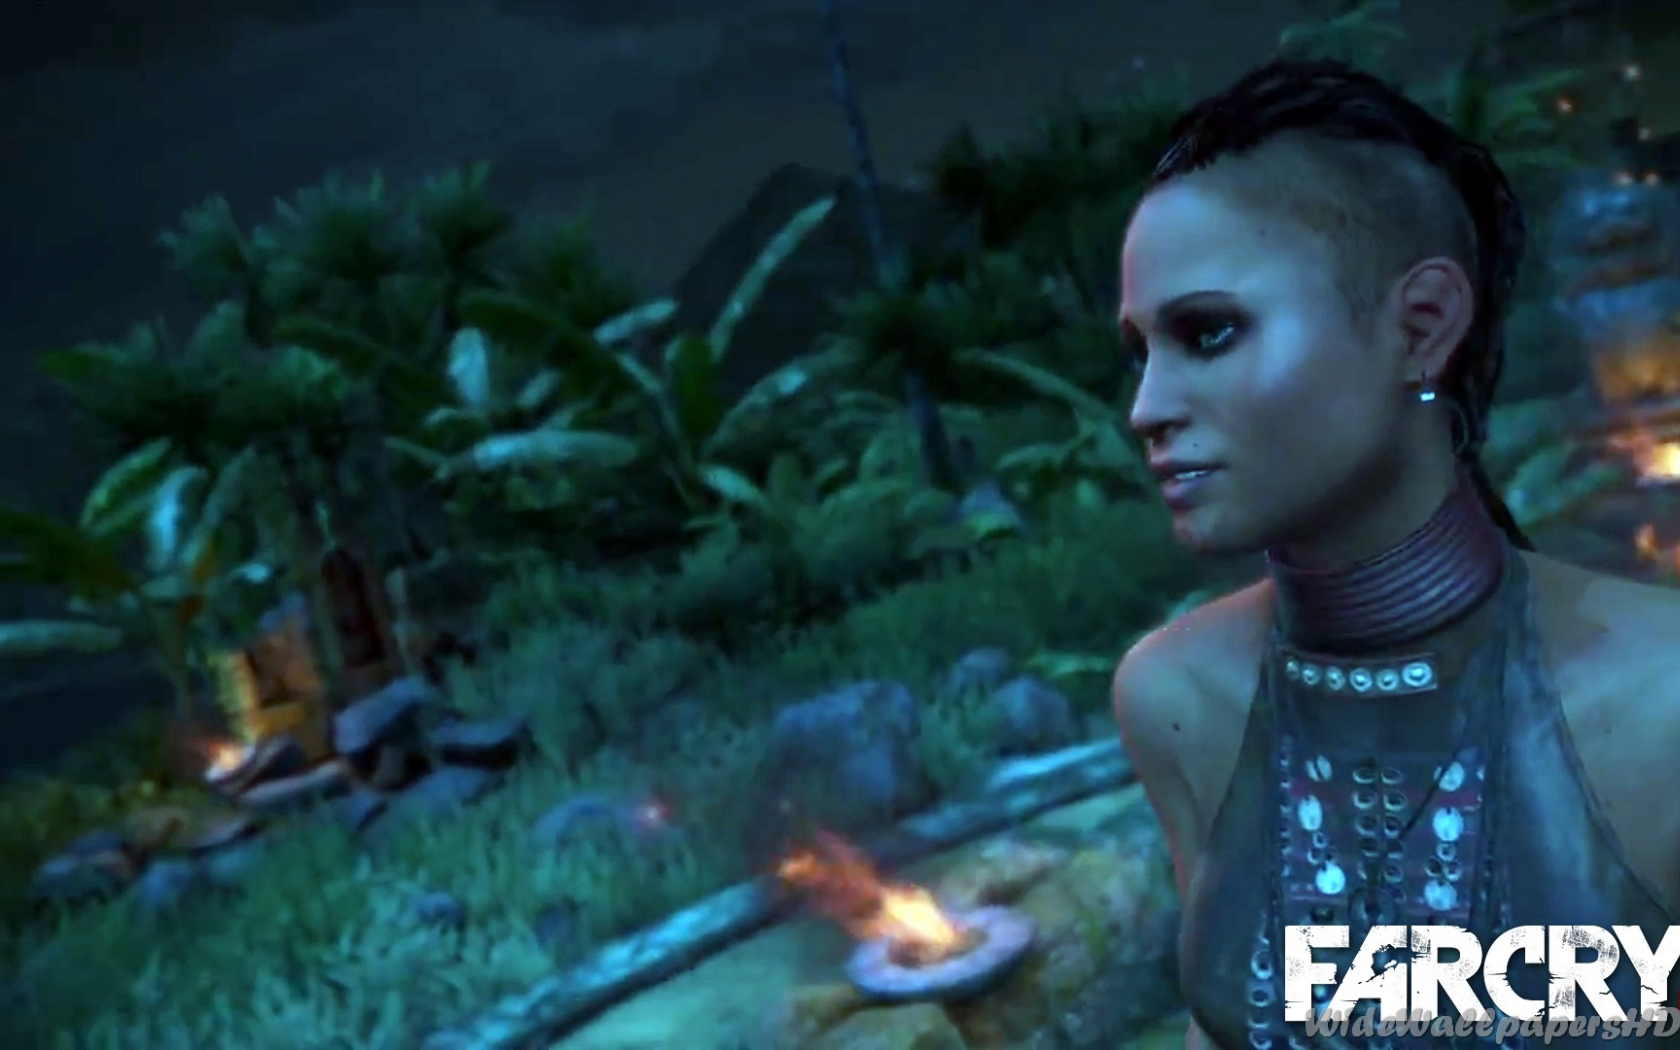 Free Download Far Cry 3 Wallpaper 1080p 9461 Wallpaper Game Wallpapers Hd 1920x1080 For Your Desktop Mobile Tablet Explore 49 Far Cry 3 Wallpaper 1080p Cry Of Fear Wallpaper